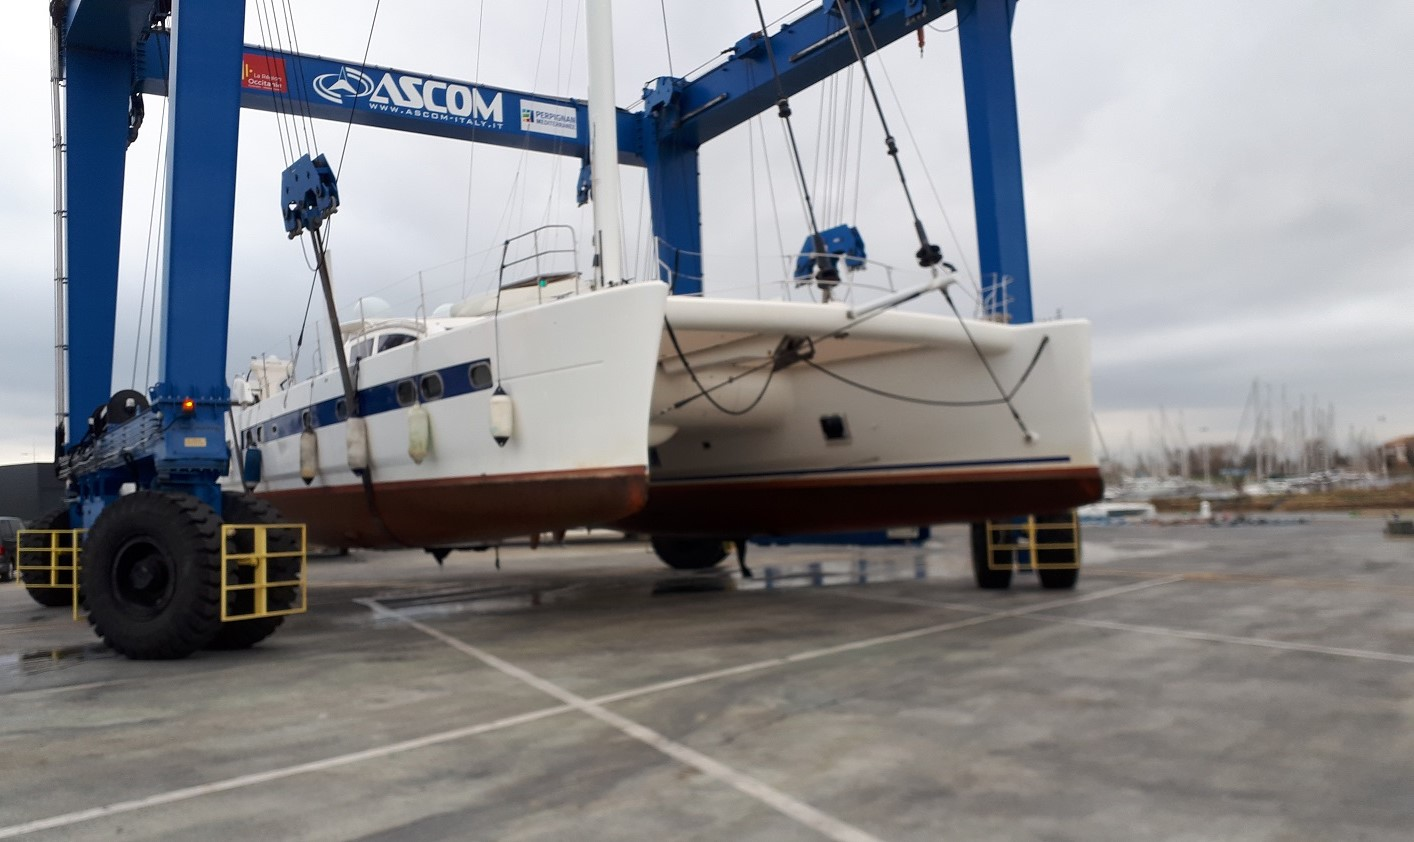 Catana 65 haul out